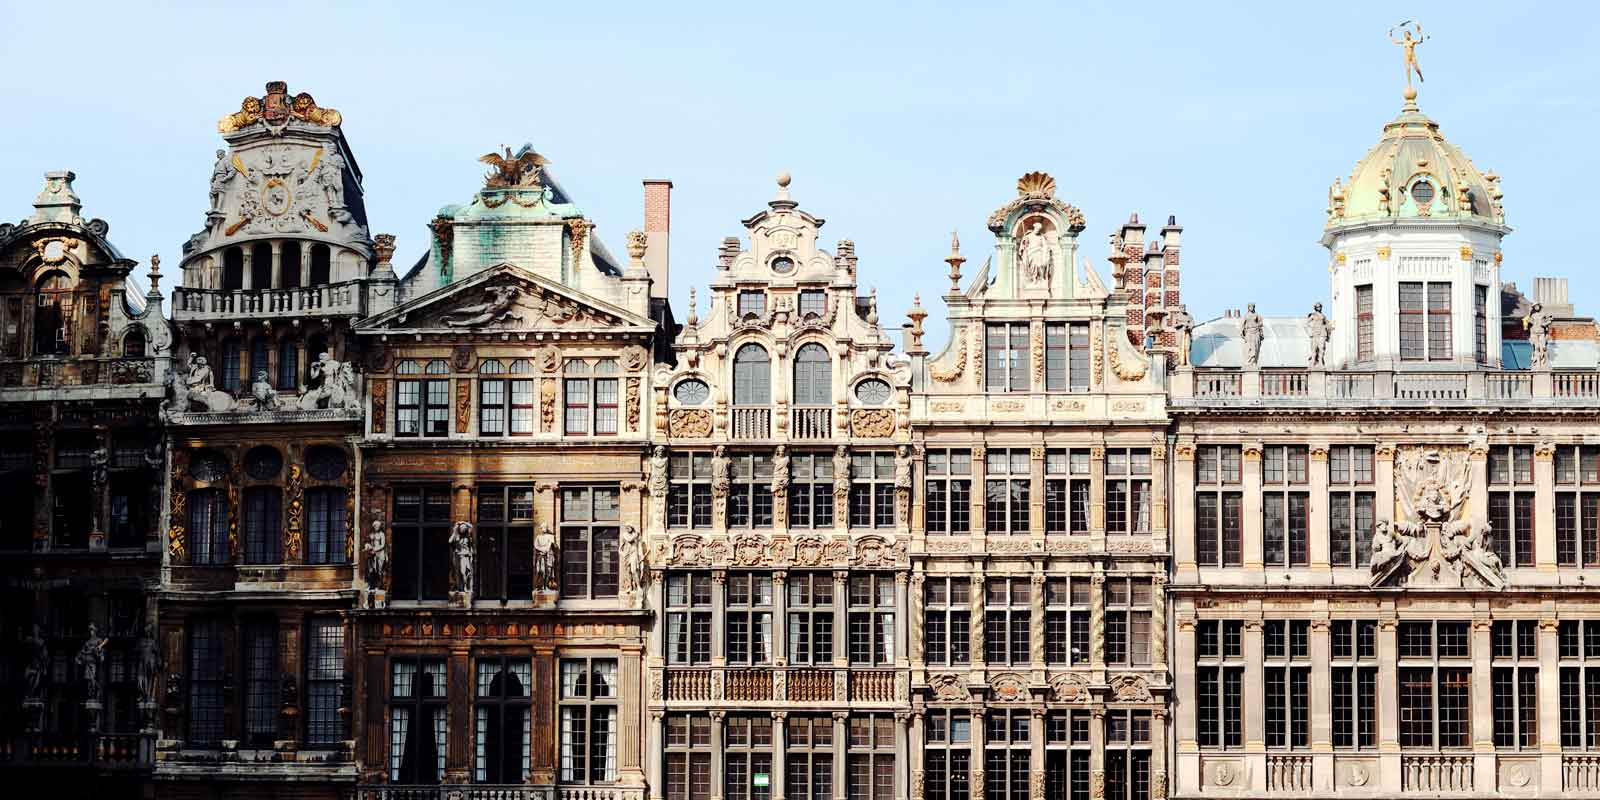 Landscape view of ornate buildings in Brussels, Belgium.